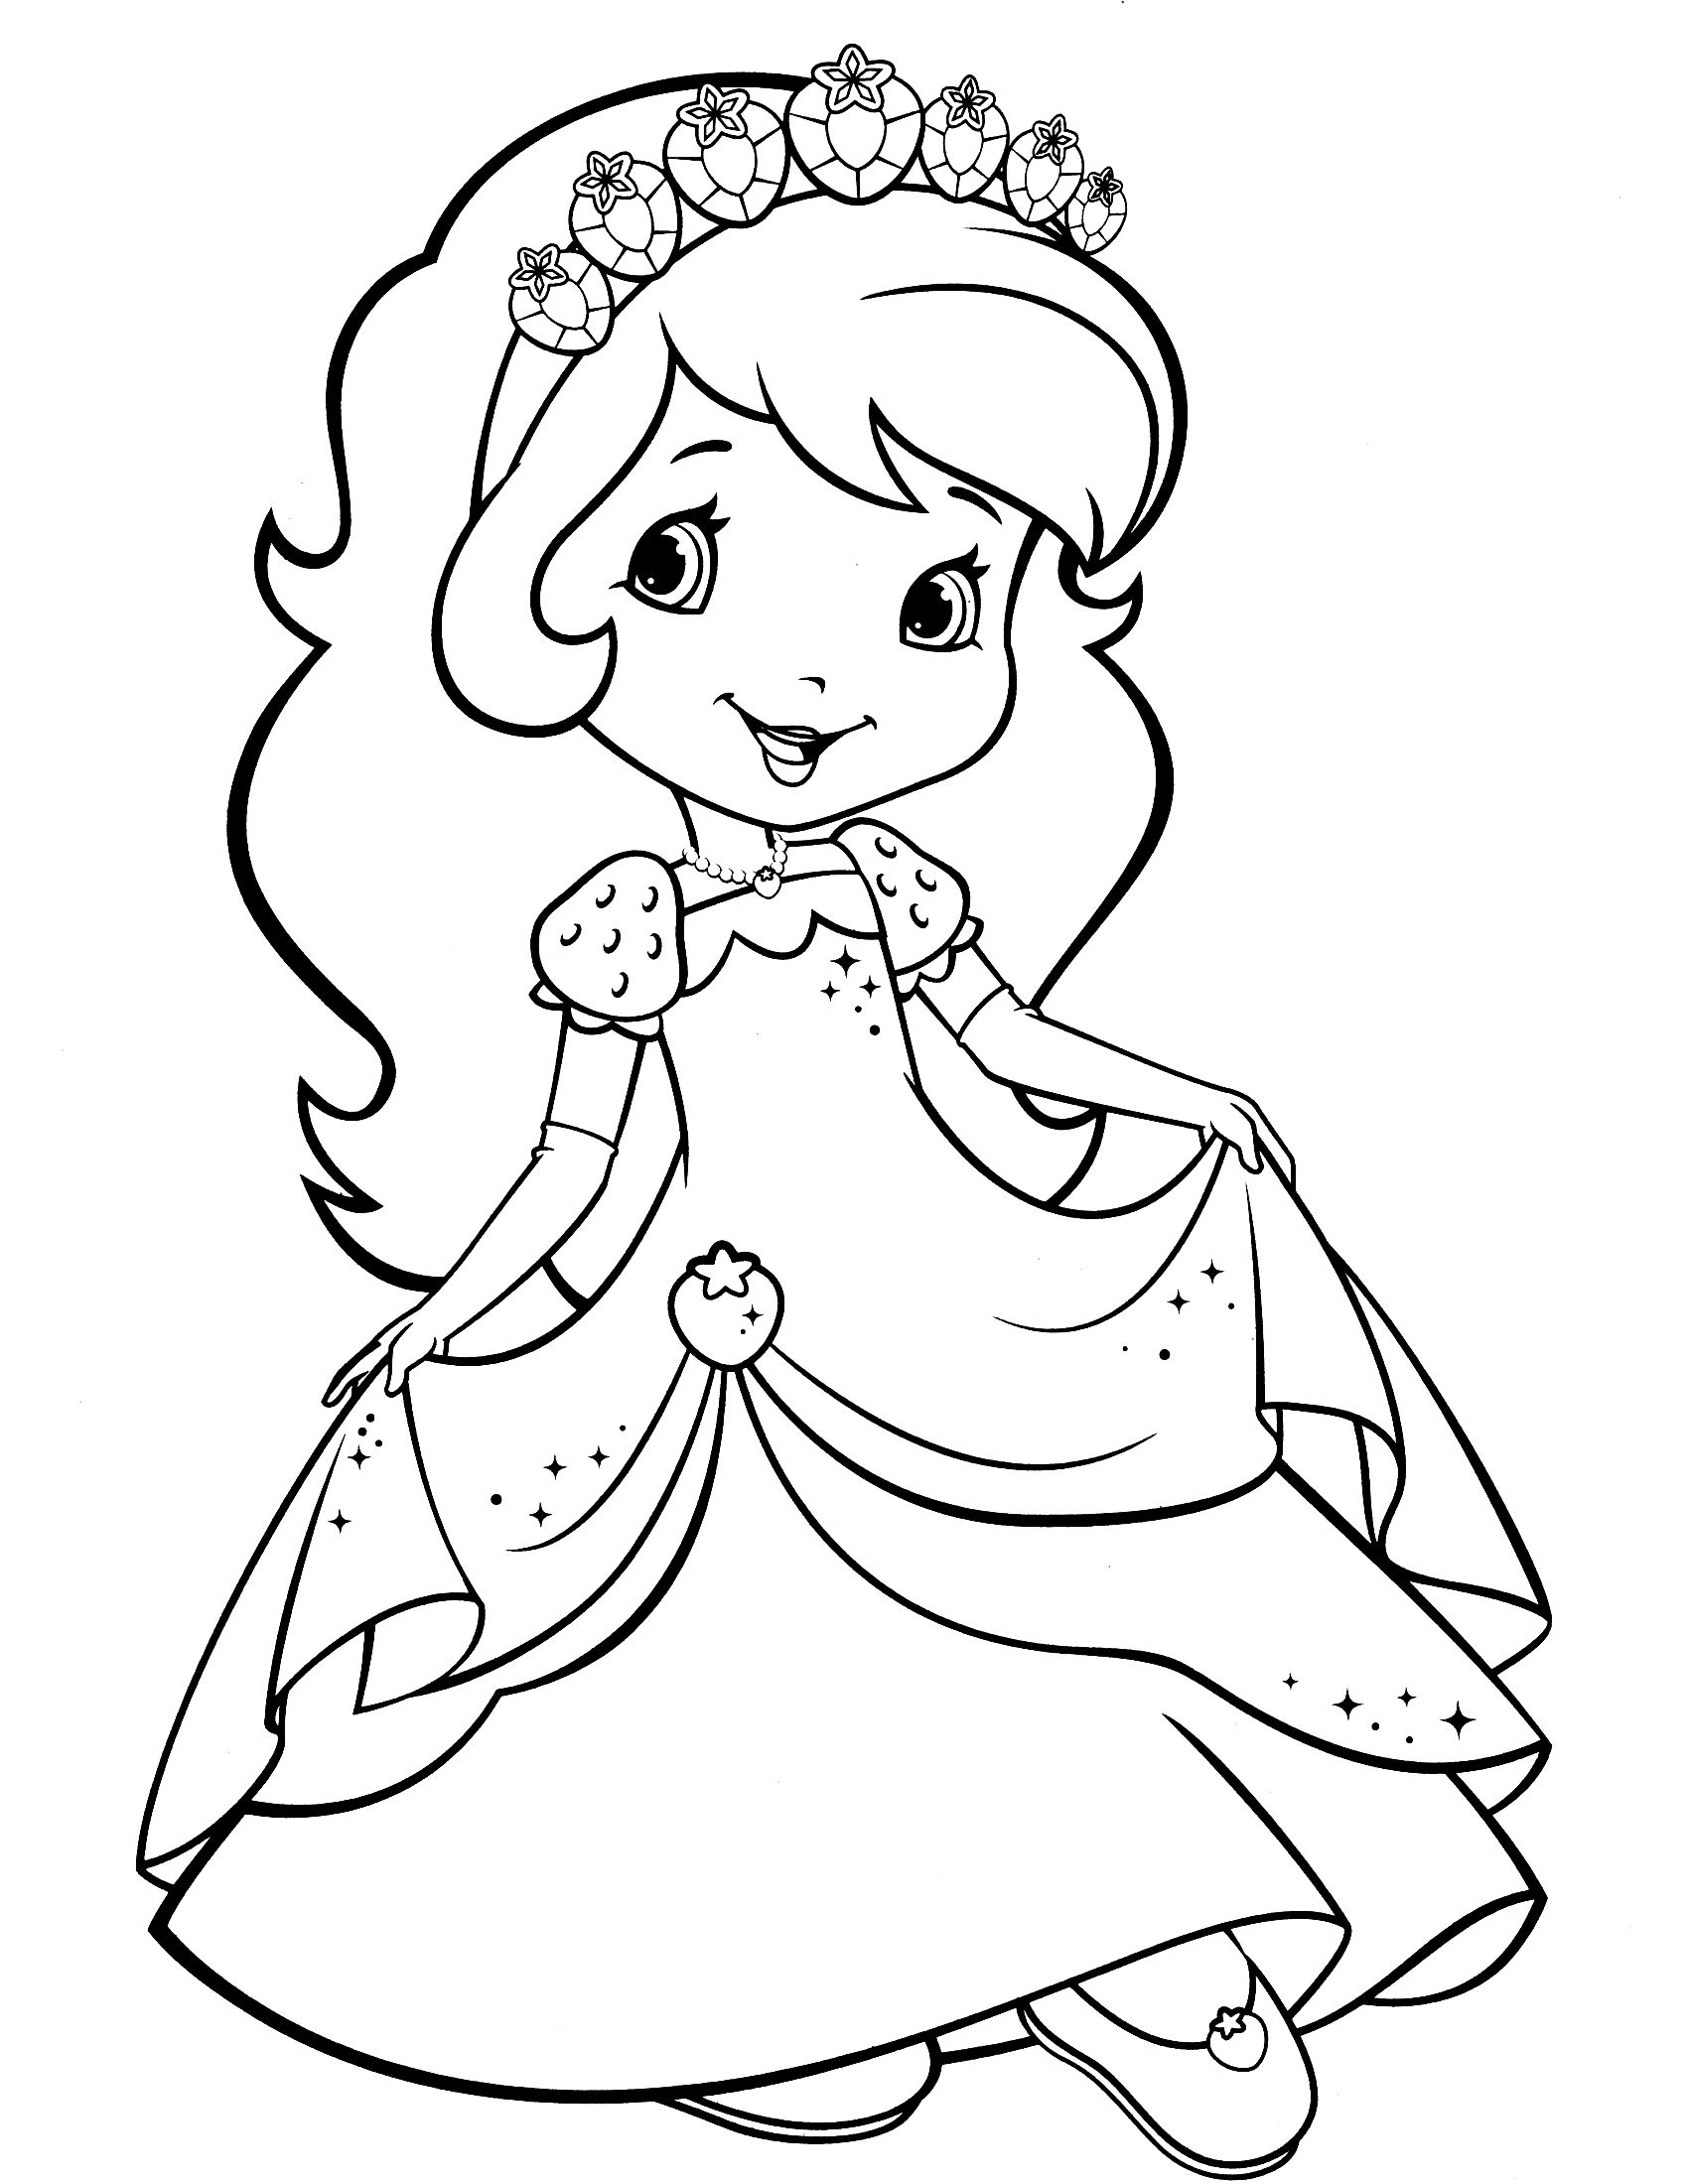 strawberry shortcake characters coloring pages top 20 free printable strawberry shortcake coloring pages strawberry shortcake coloring pages characters